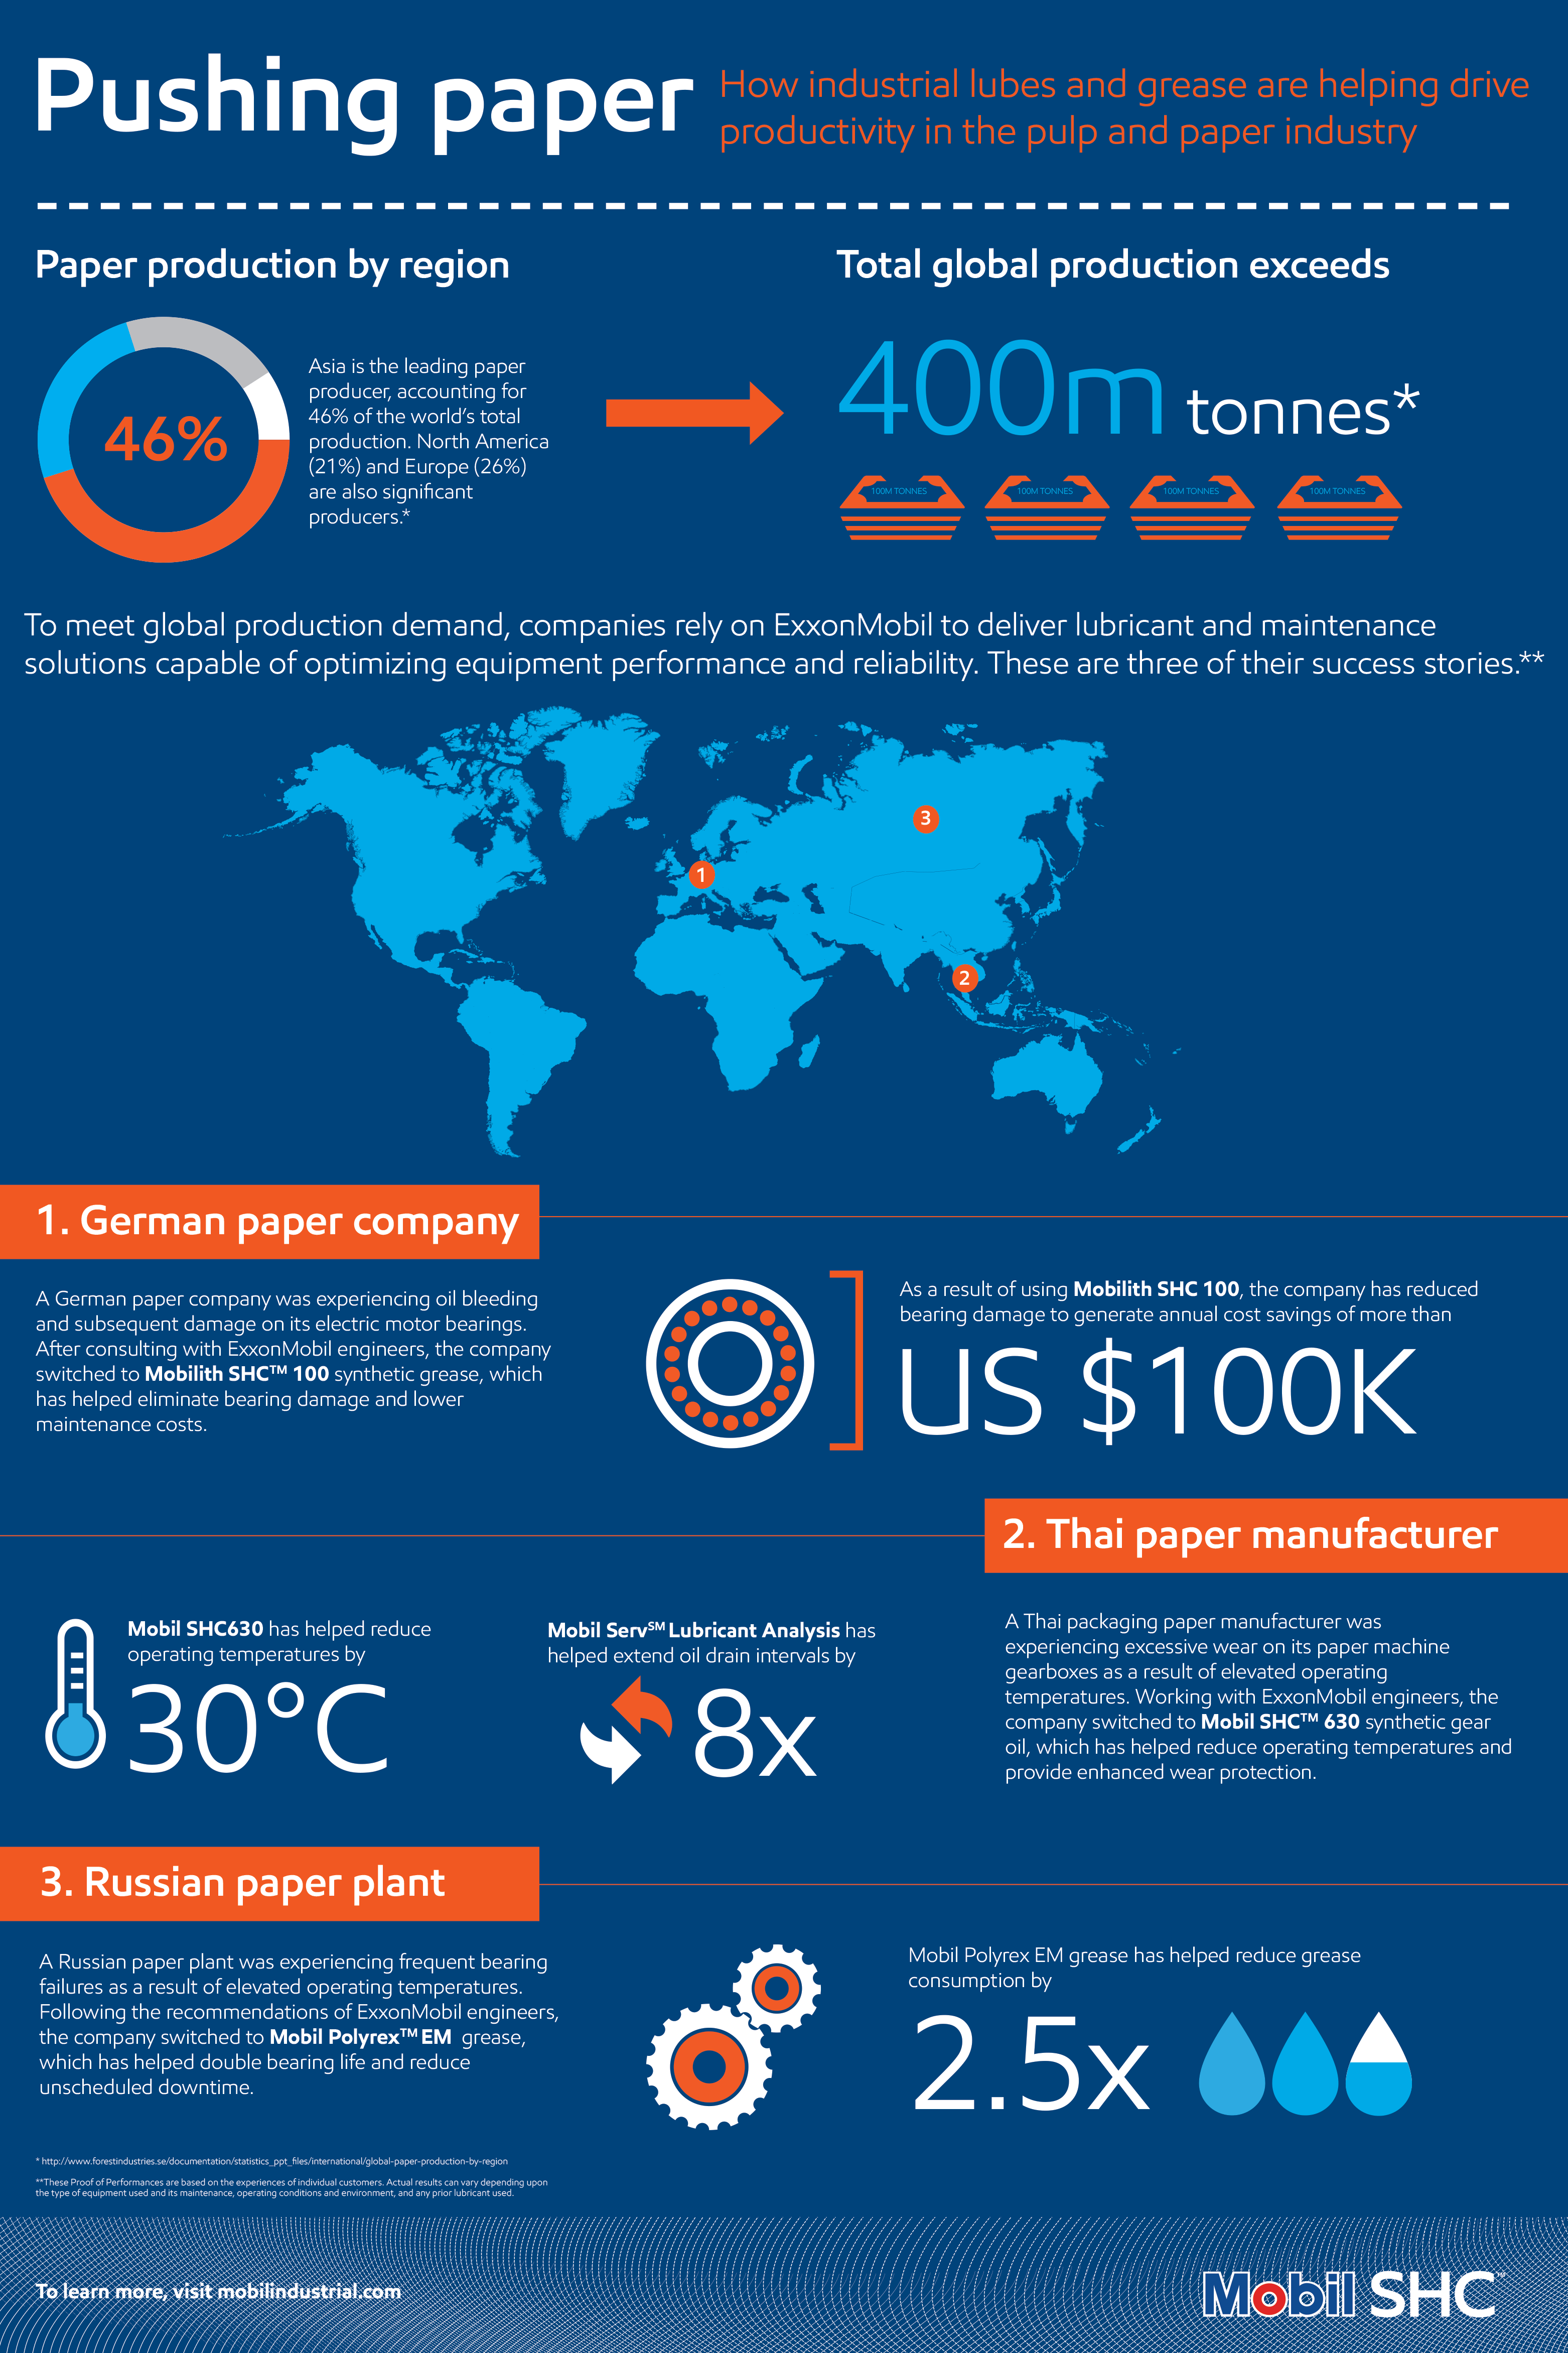 Pulp and Paper Infographic - Allied Lubricants